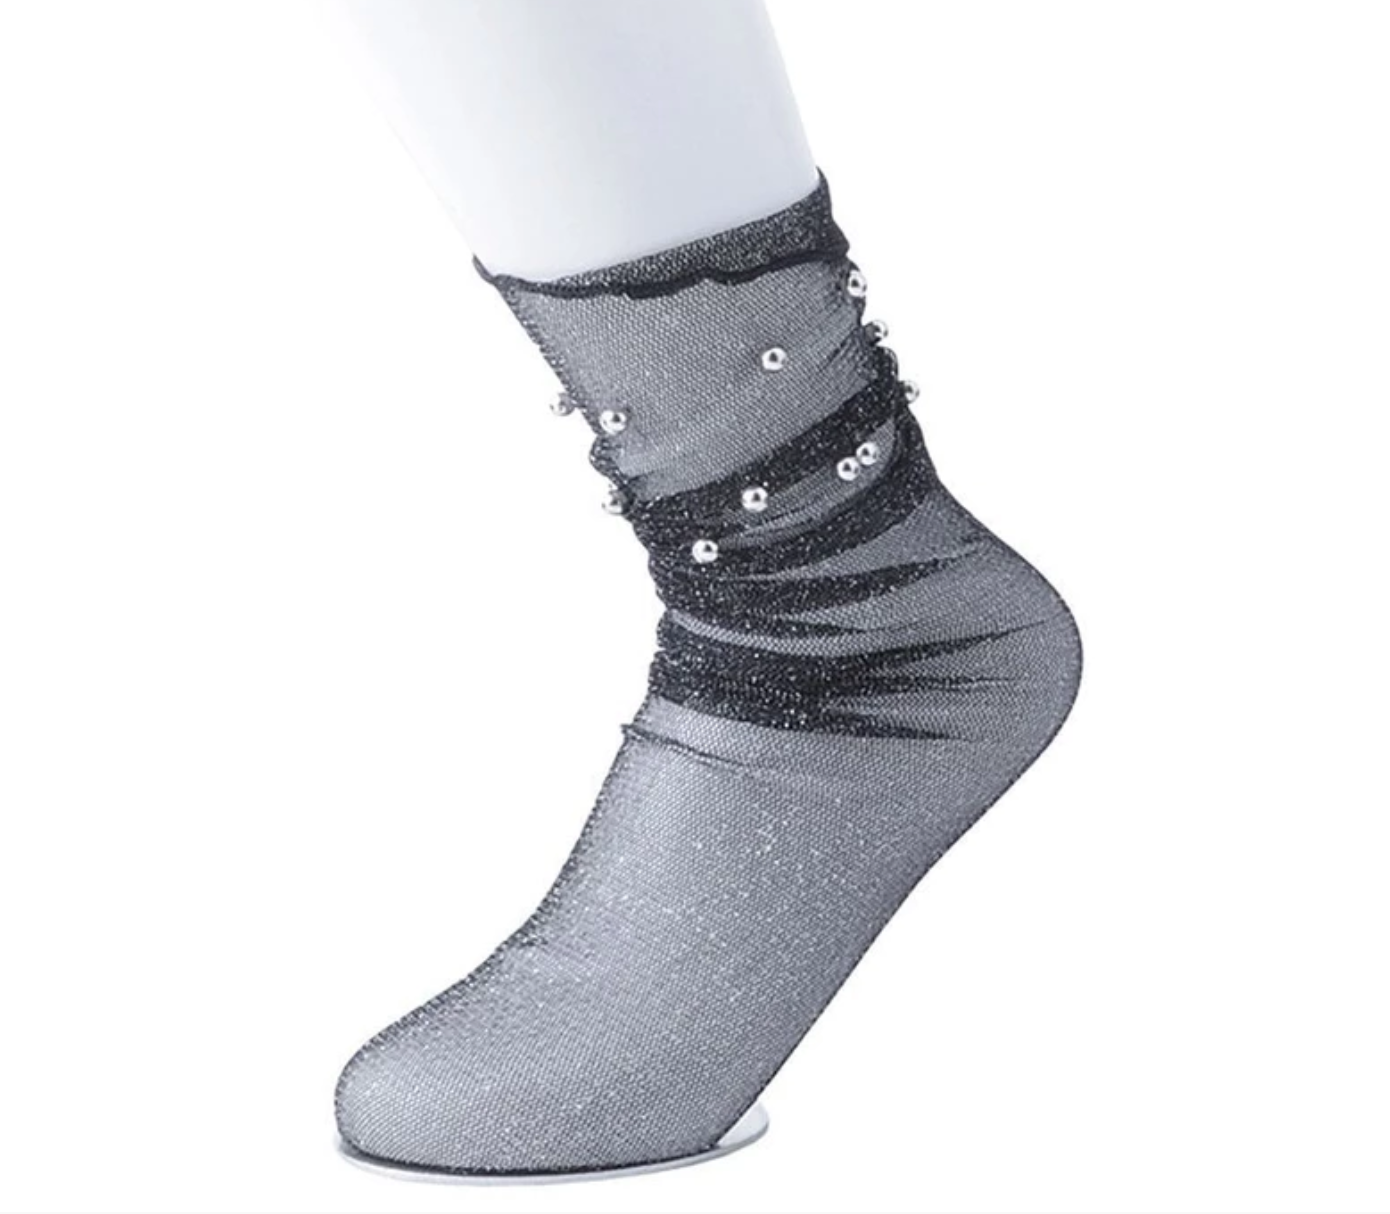 TUKTSK1015 - SILVER BALL EMBELLISHED METALLIC GREY MESH SOCK